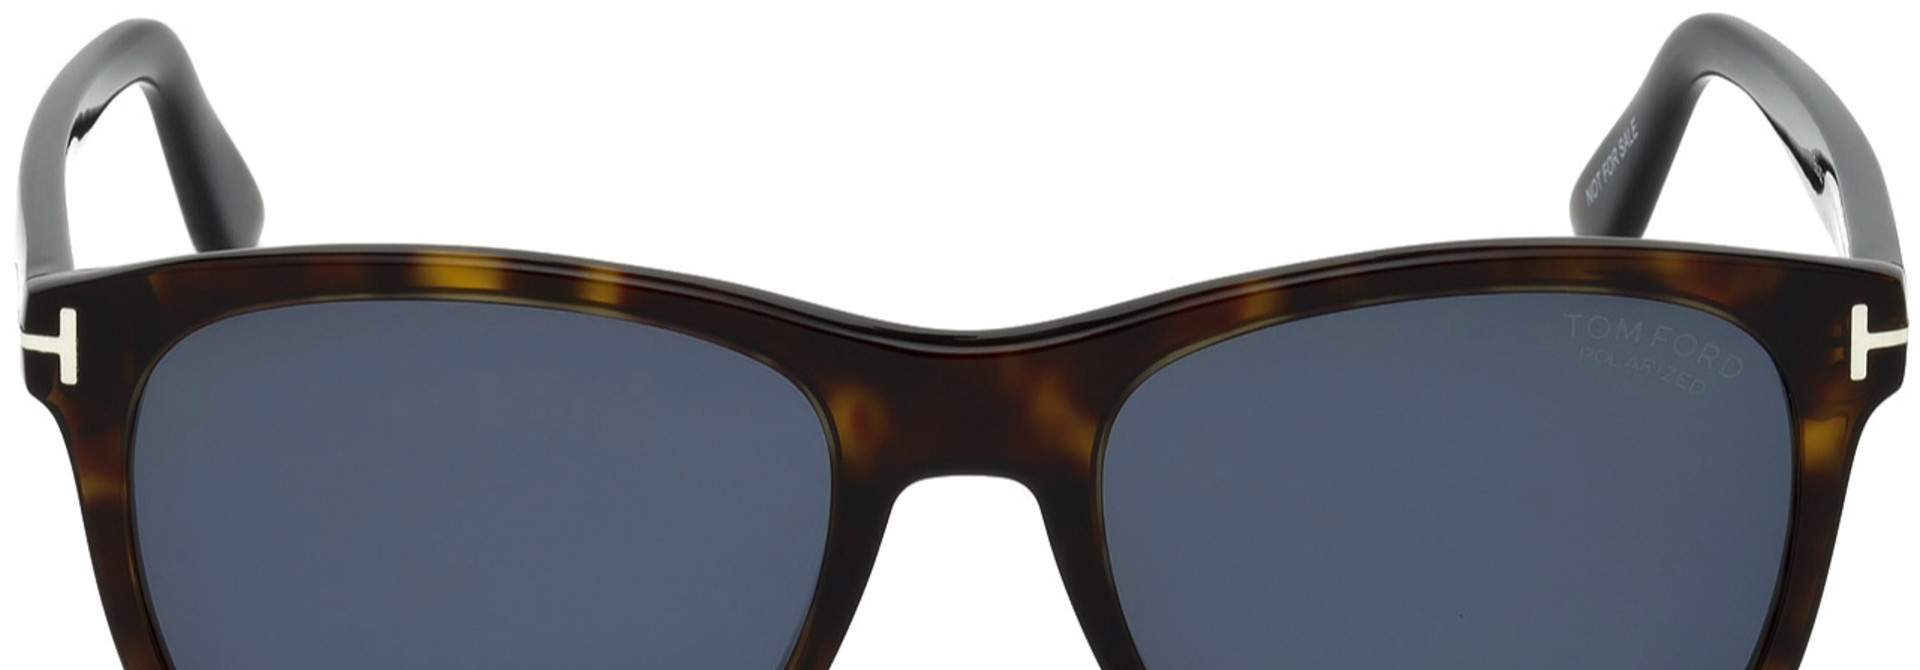 Tom Ford Eric 02 TF595 52D